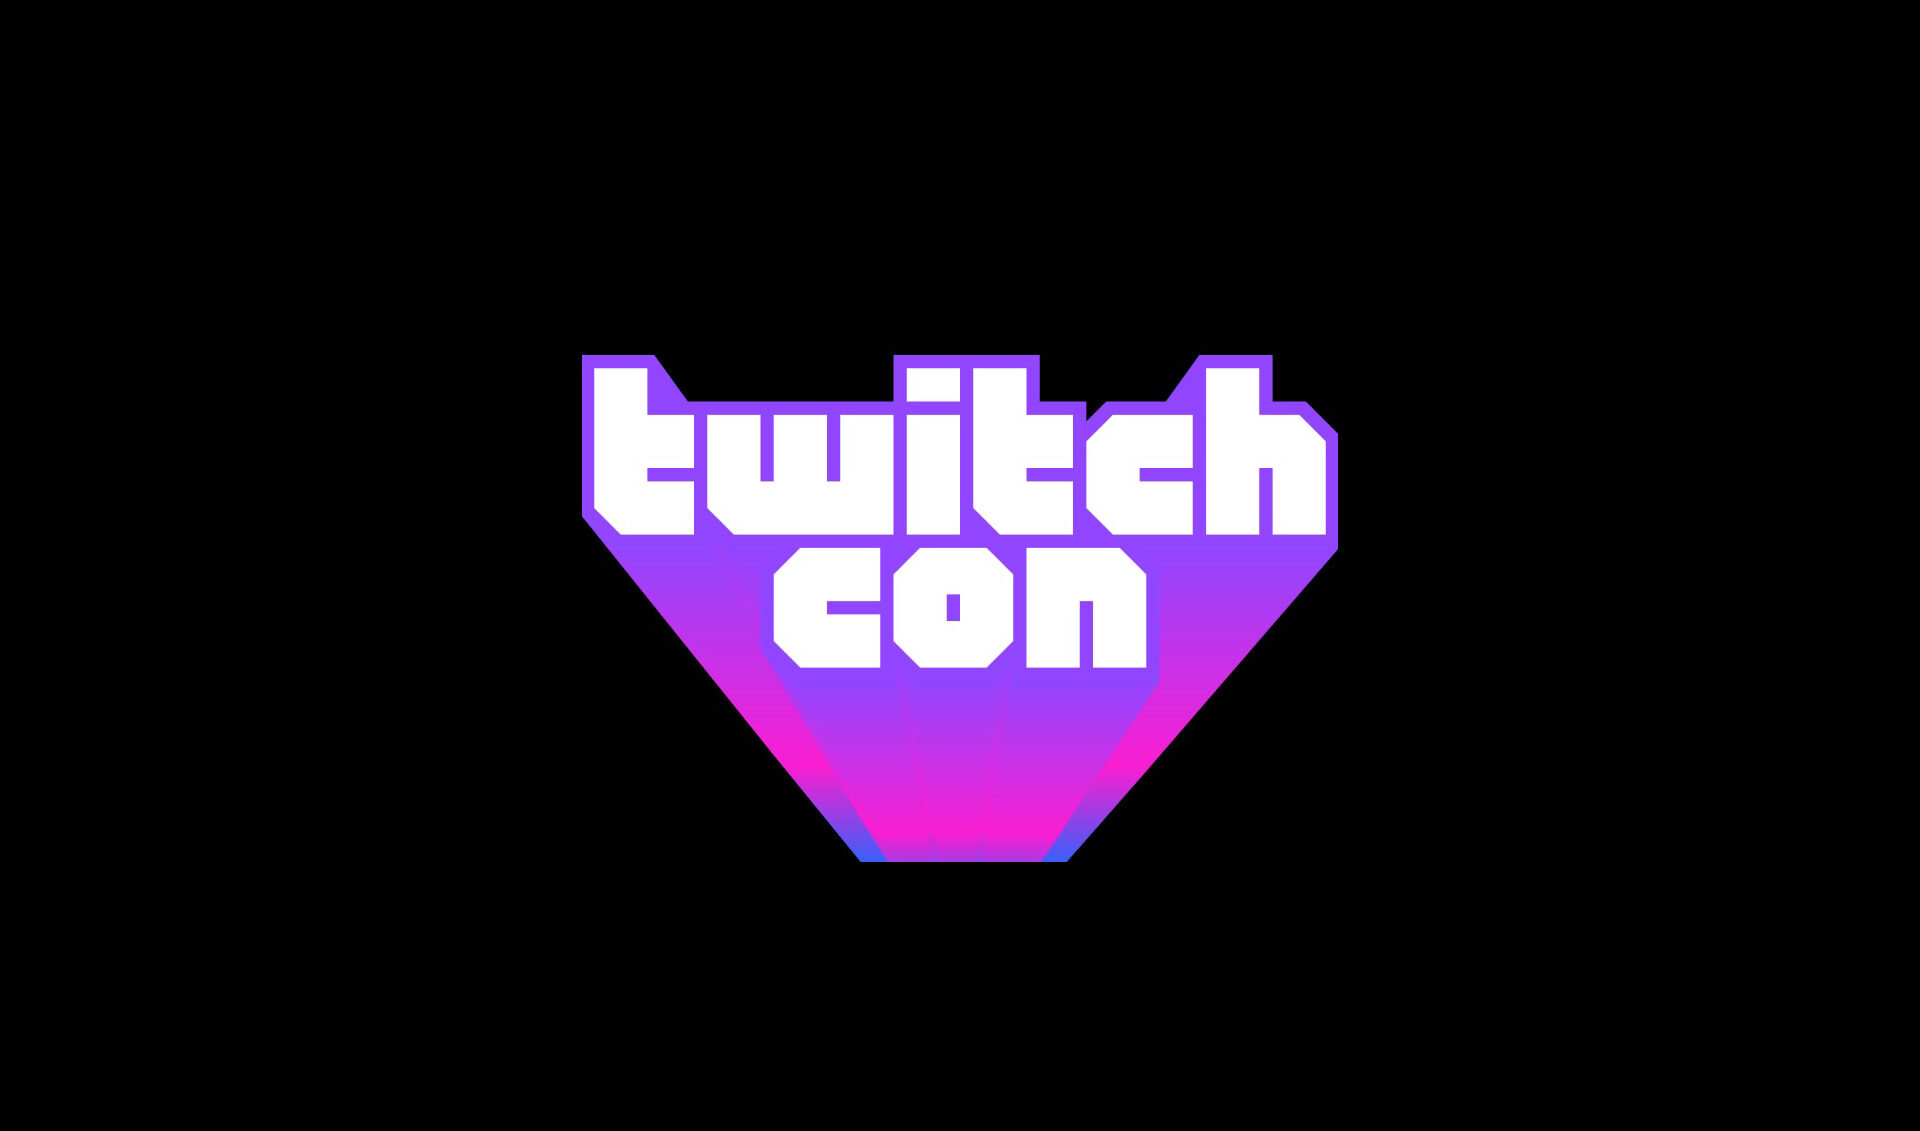 TwitchCon Plans 2022 Return To IRL With Events In Amsterdam, San Diego